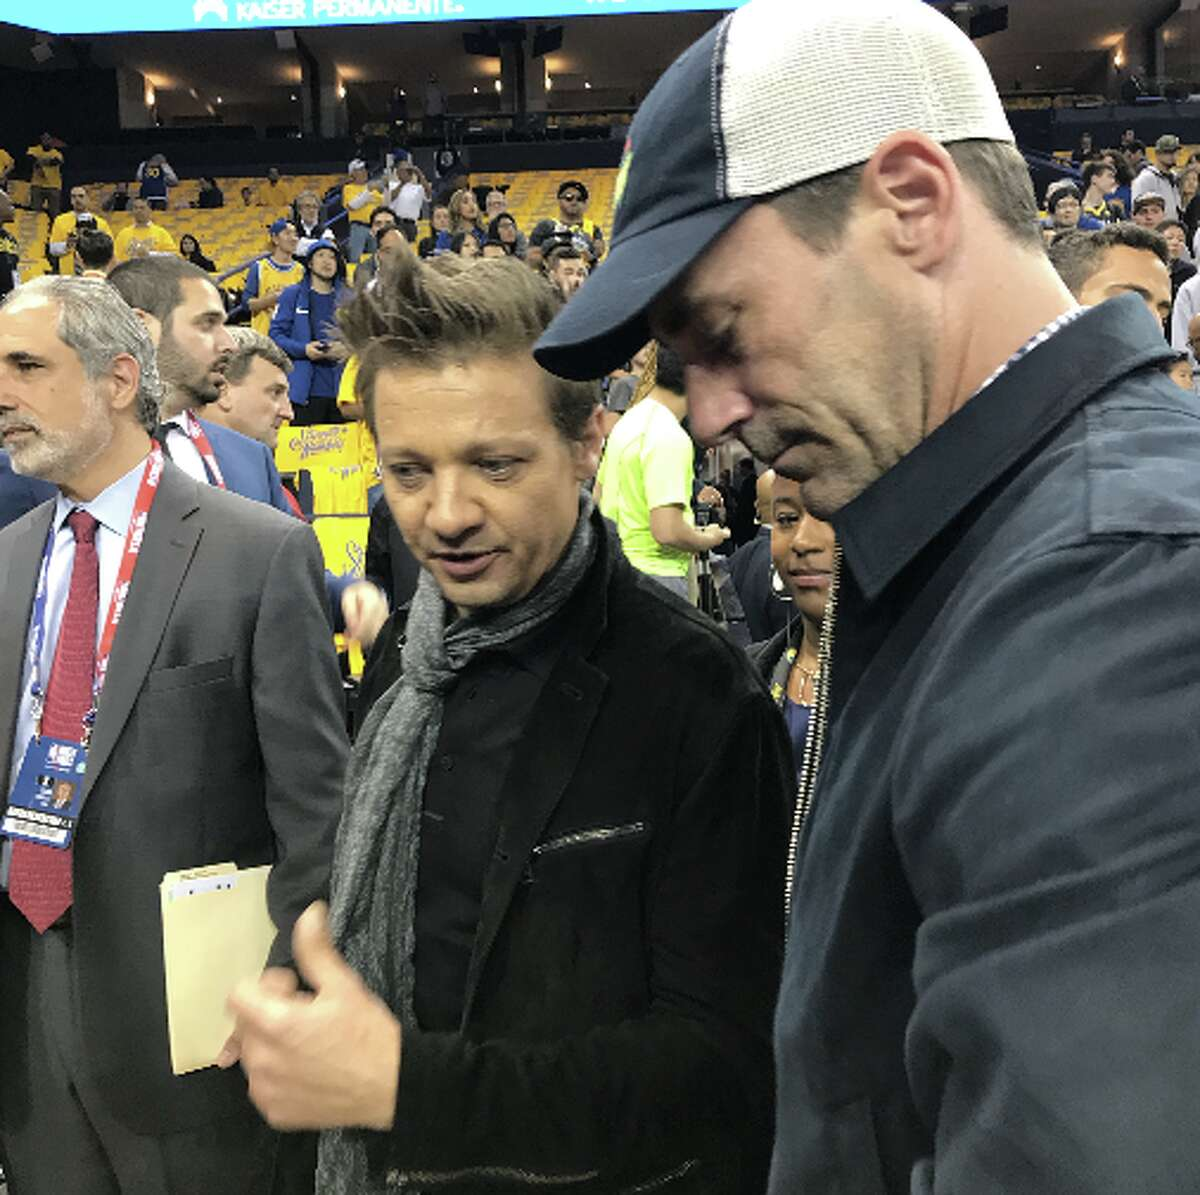 Actors Jeremy Renner and Jon Hamm prior to Game 1 of the 2018 NBA Finals between the Golden State Warriors and the Cleveland Cavaliers at ORACLE Arena on May 31, 2018 in Oakland, California.